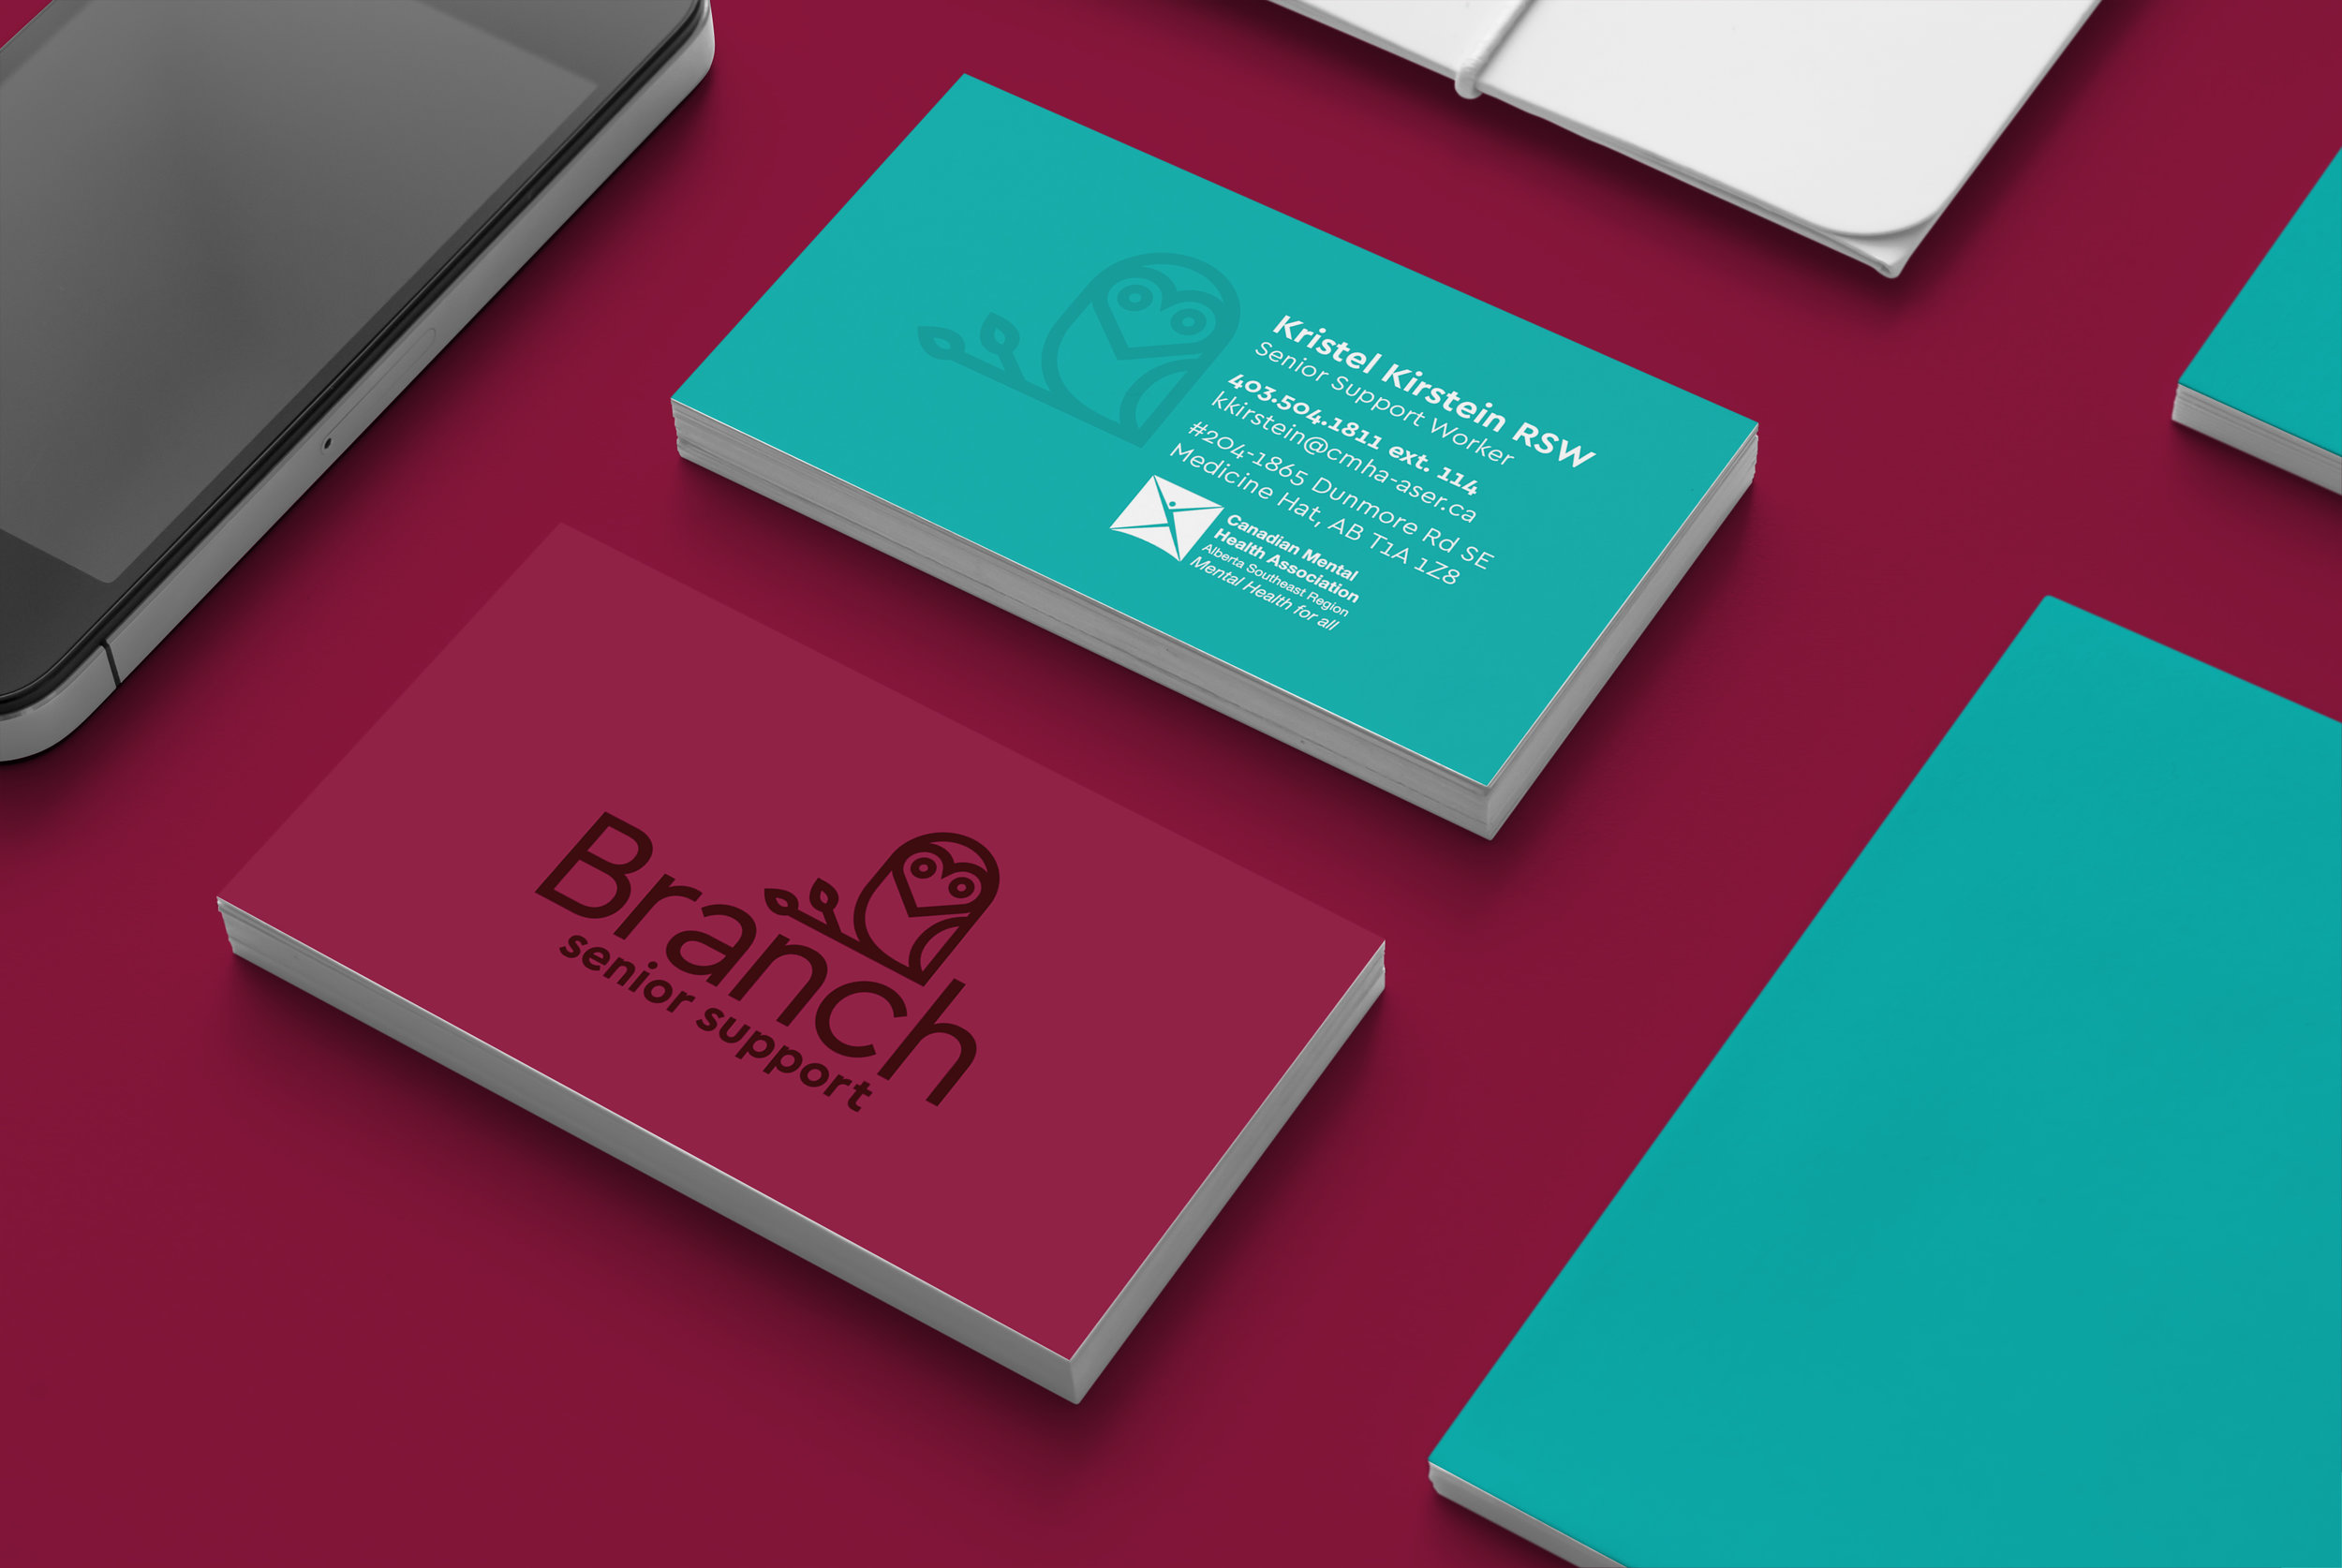 03_Branding Identity Mock-up 6_closeup.jpg